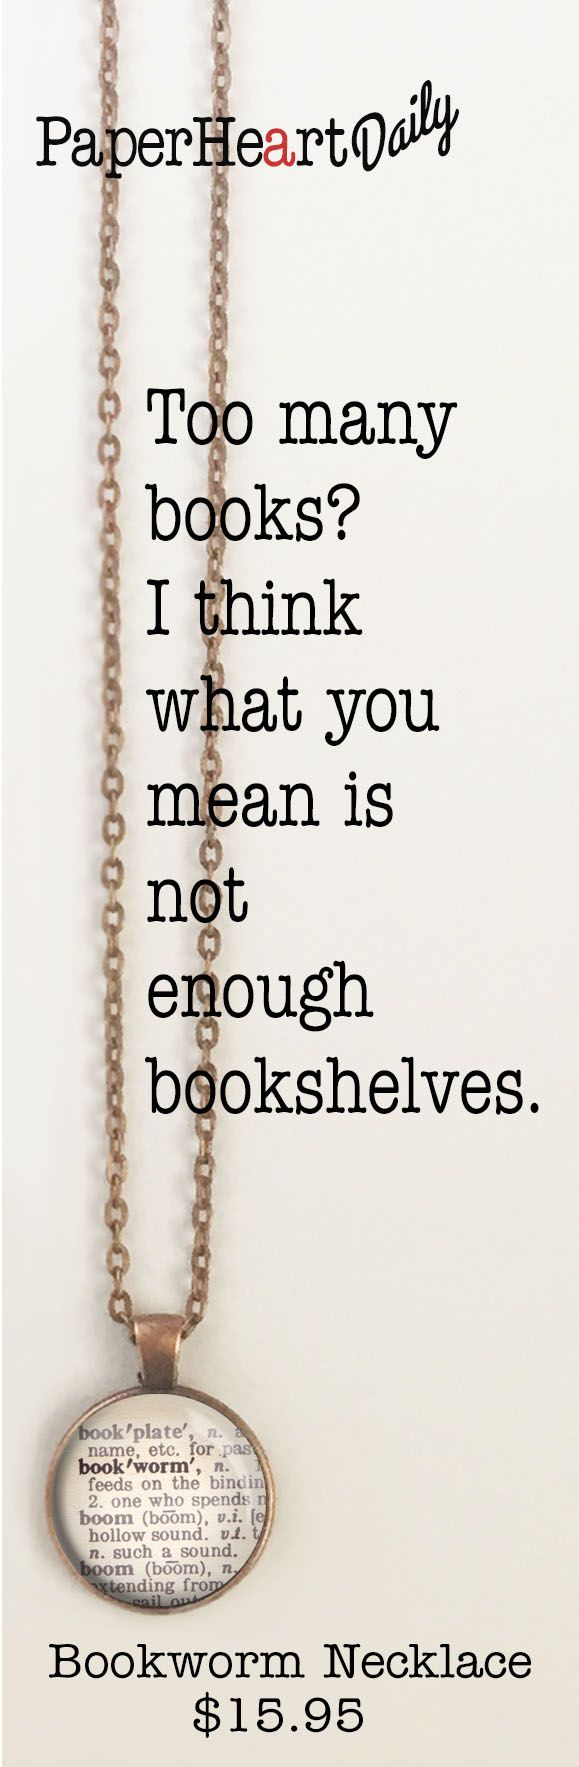 Bookworm, Book Lover, Reader, Bibliophile - necklaces and other jewelry for the bookish types $15.95